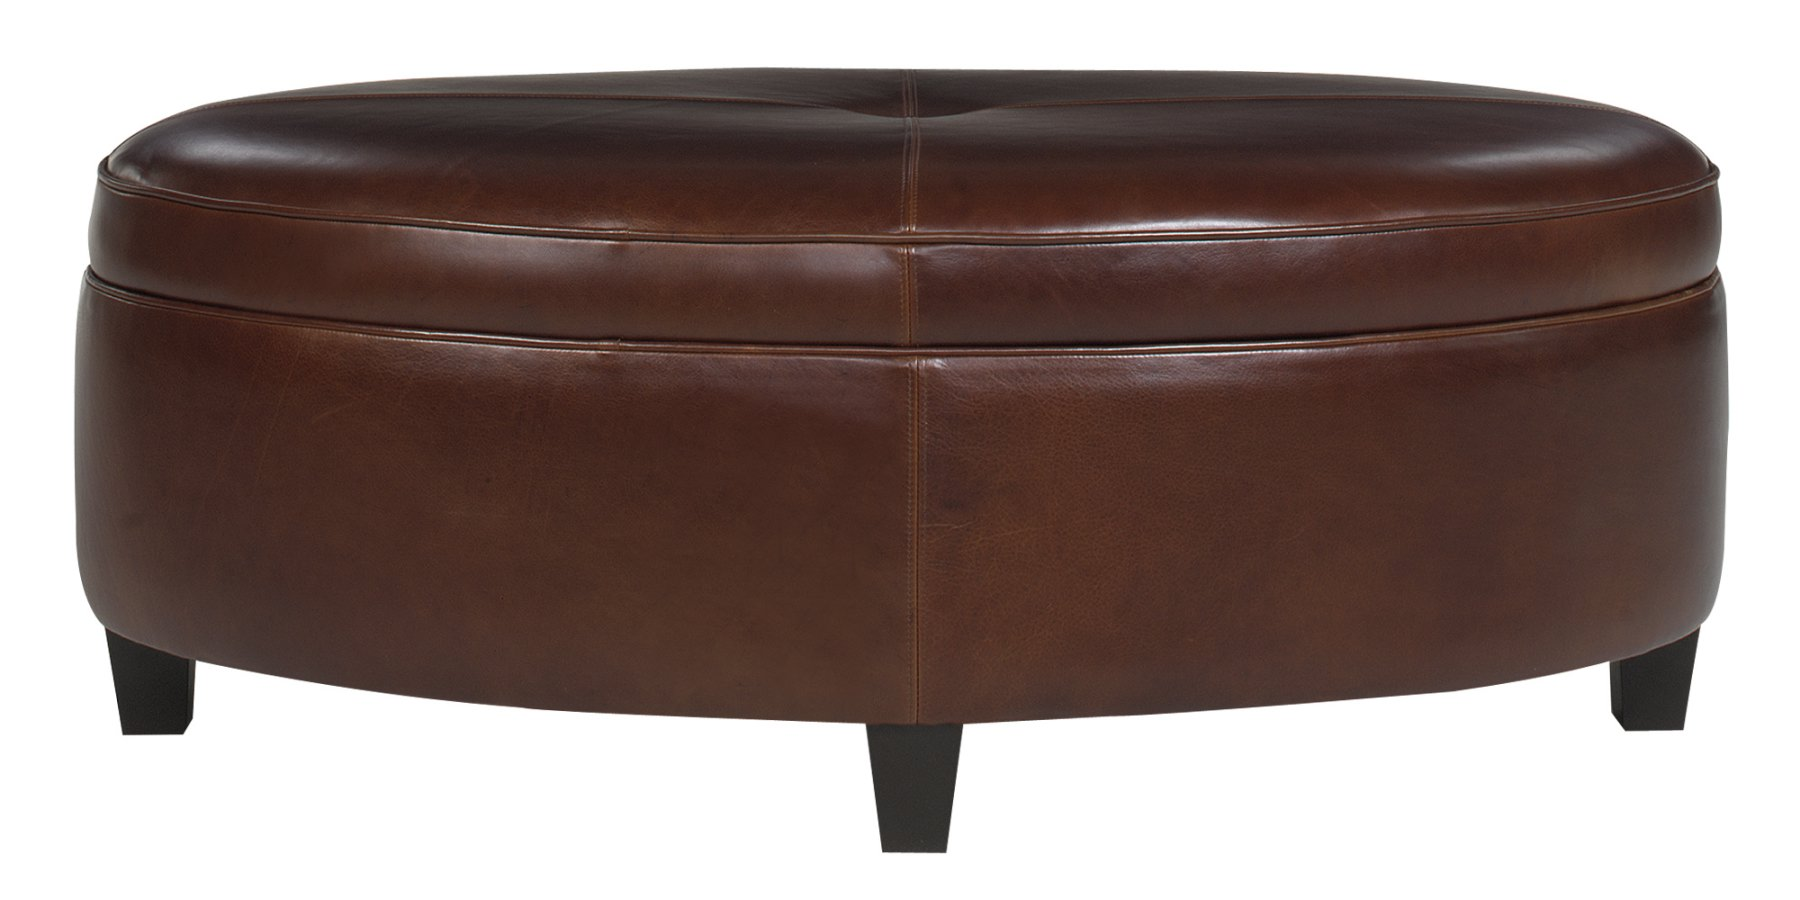 oval ottoman coffee table with storage club furniture. Black Bedroom Furniture Sets. Home Design Ideas